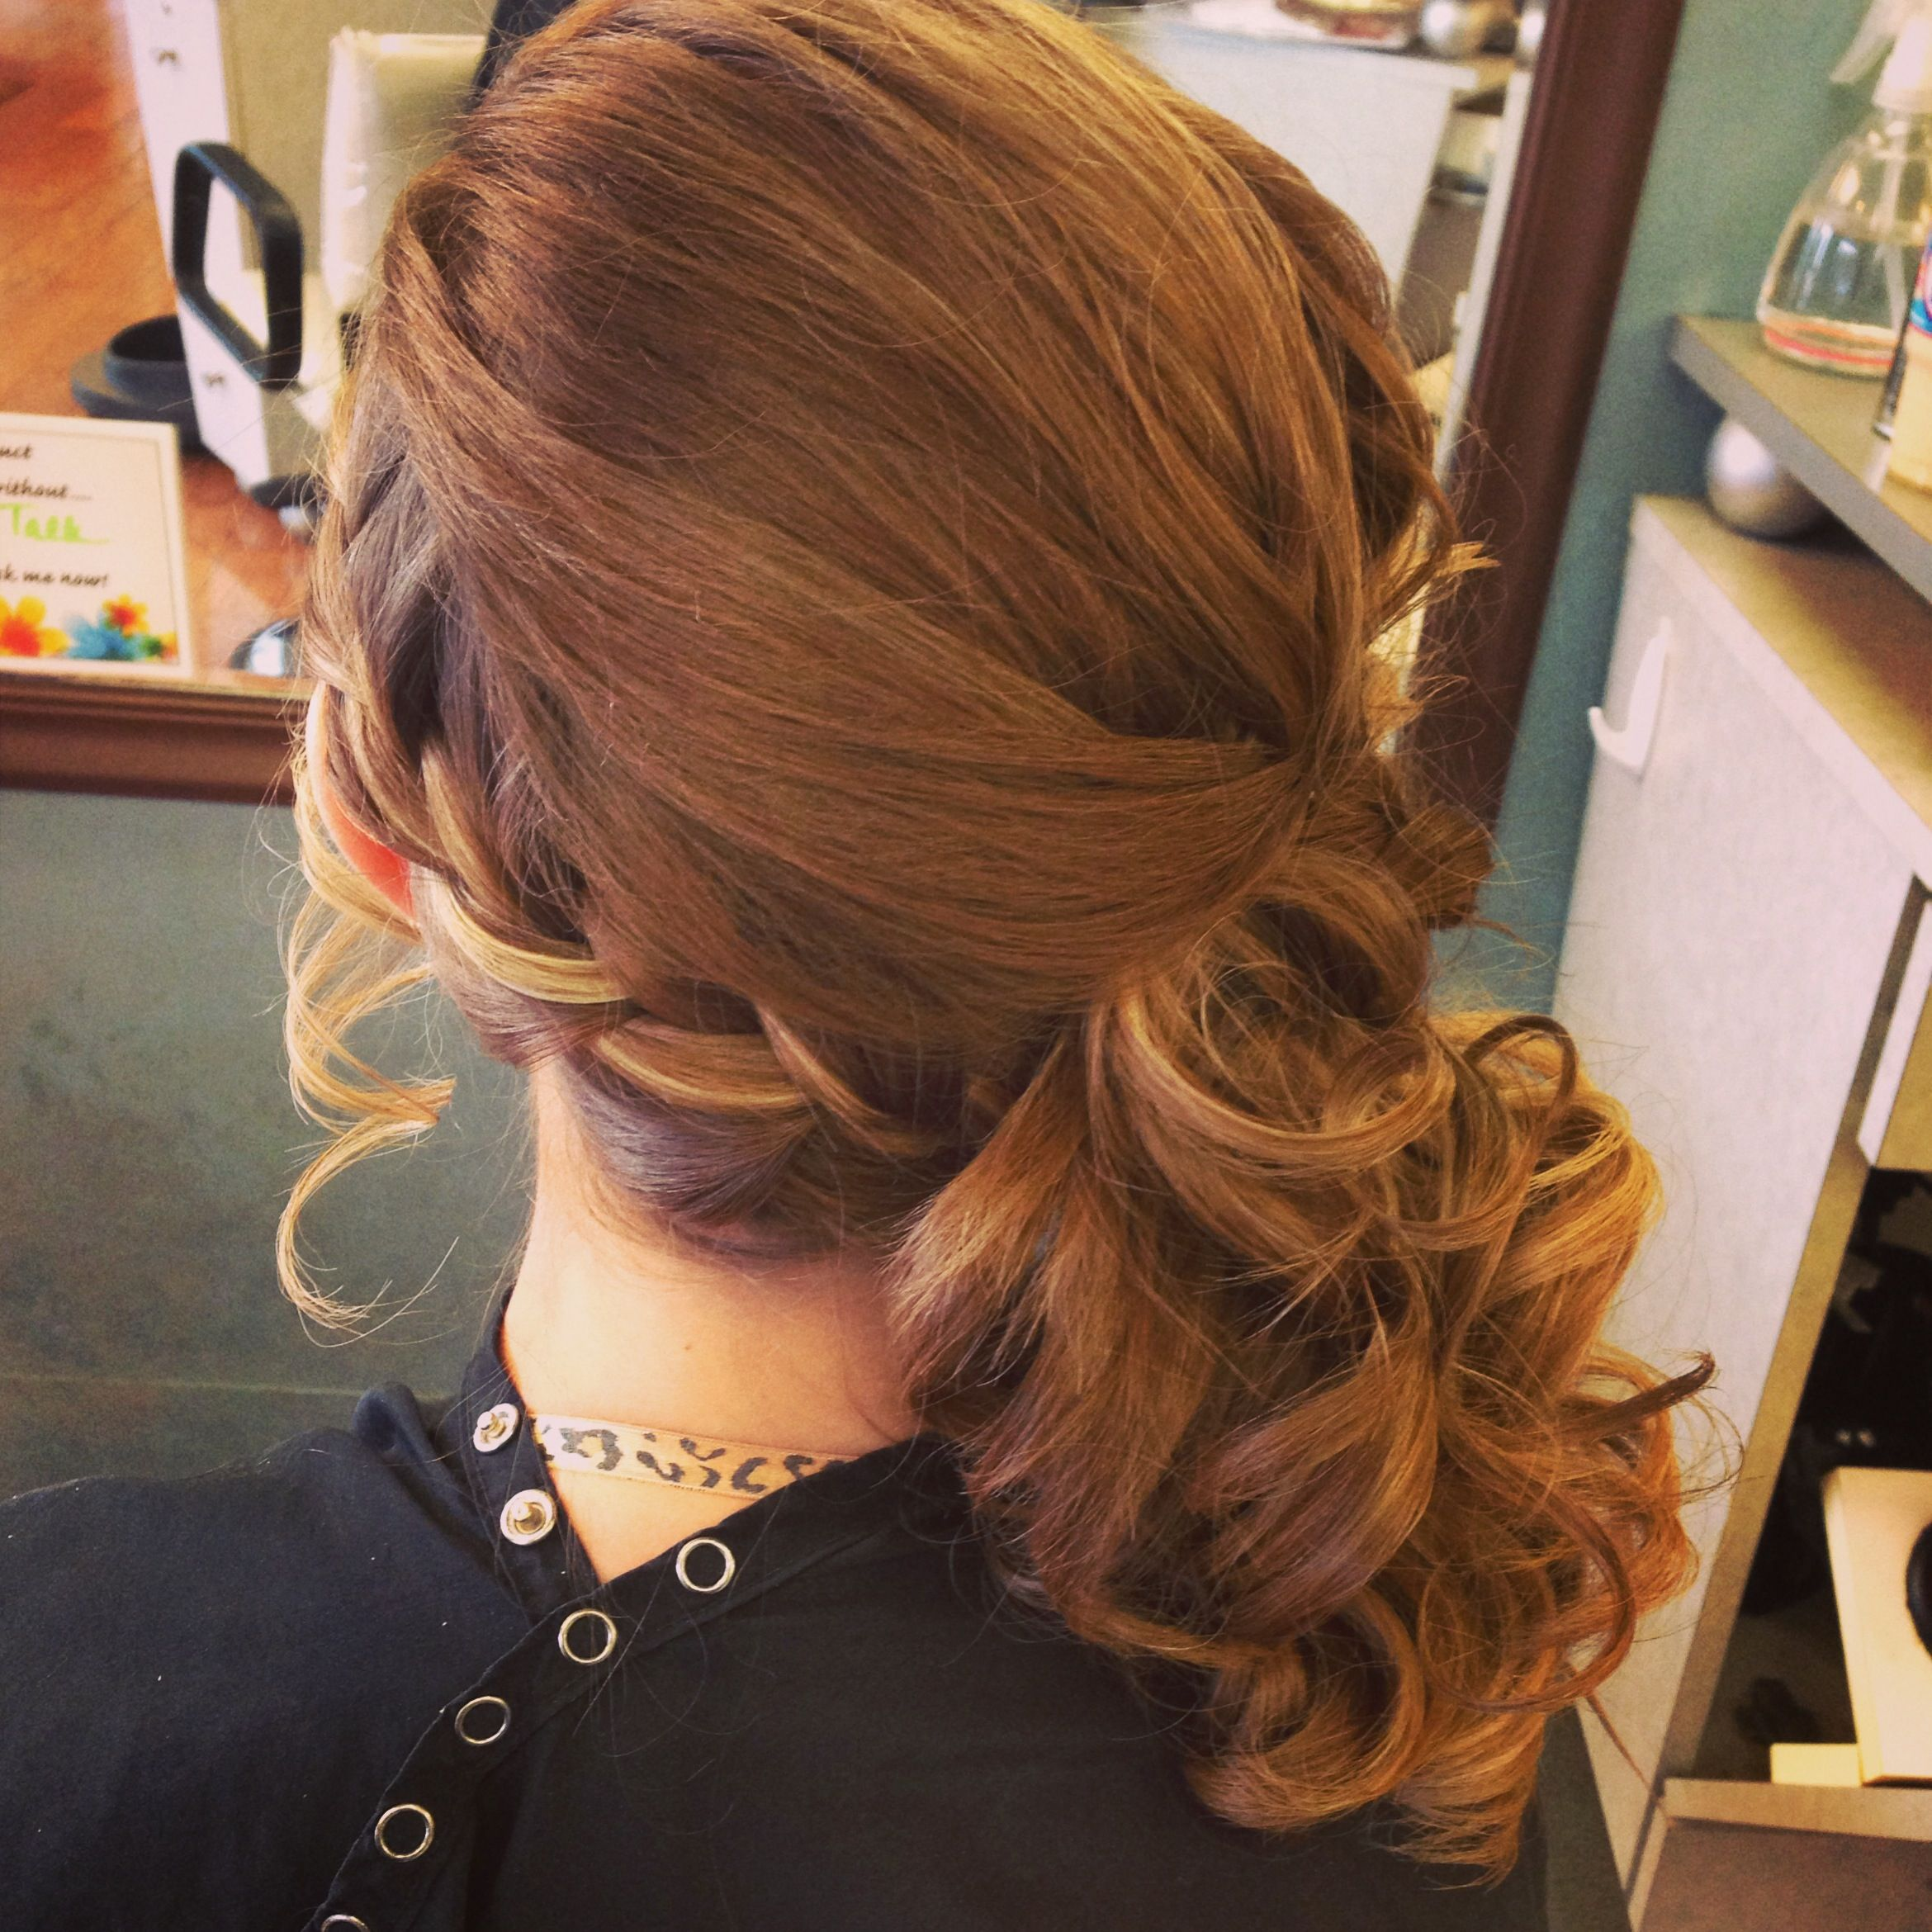 Side braid with curls cute hairstyles pinterest hair style